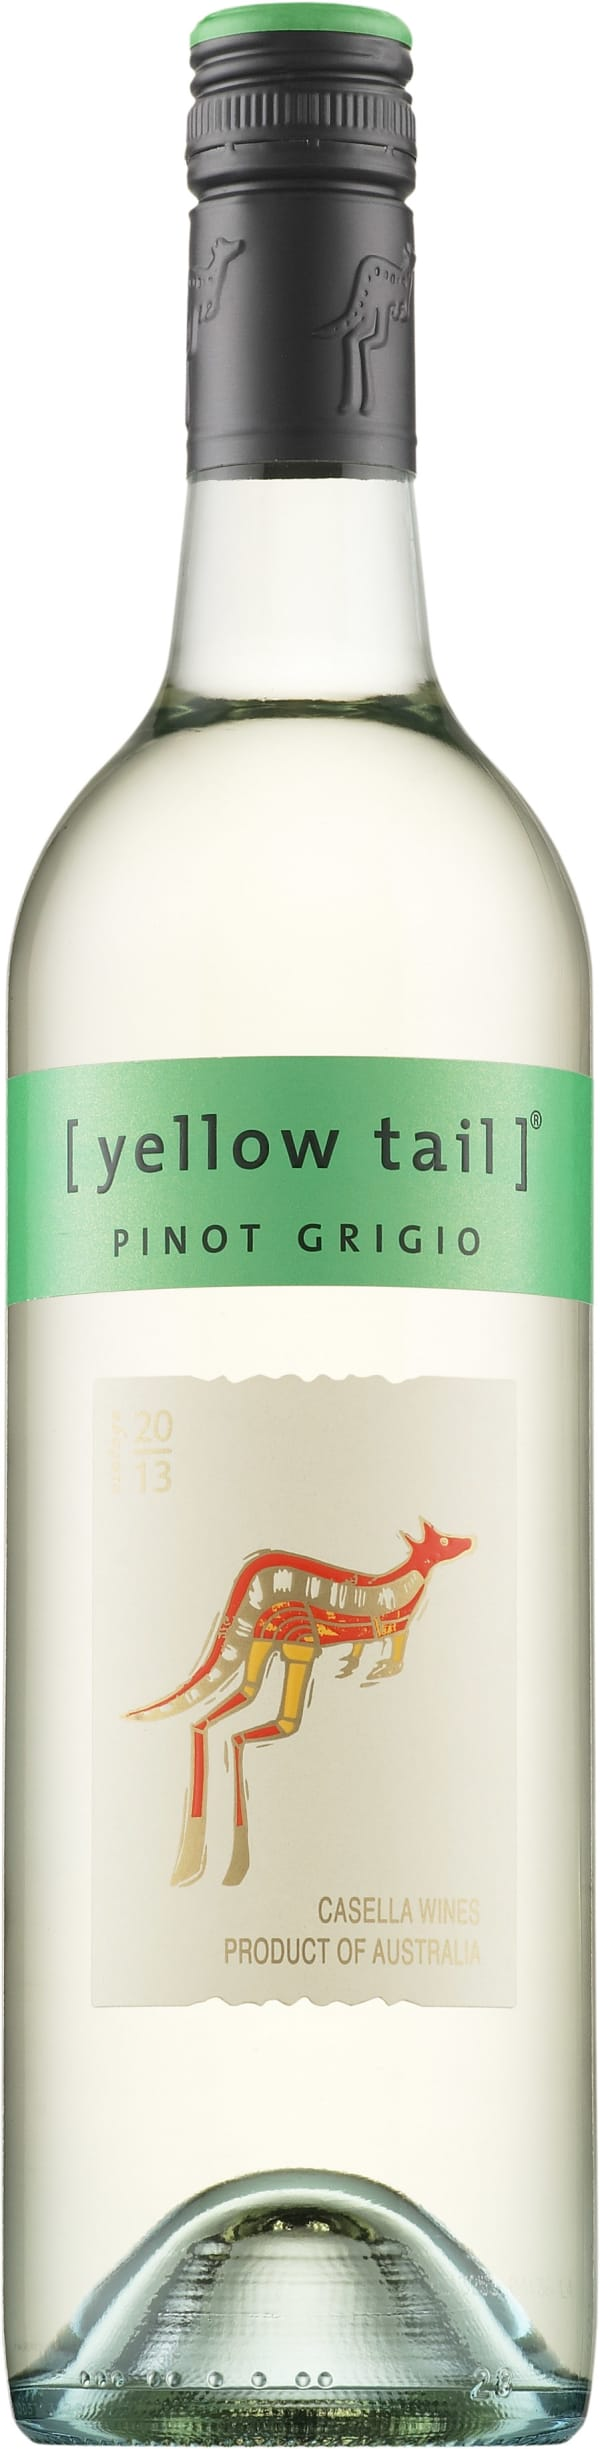 Yellow Tail Pinot Grigio 2016